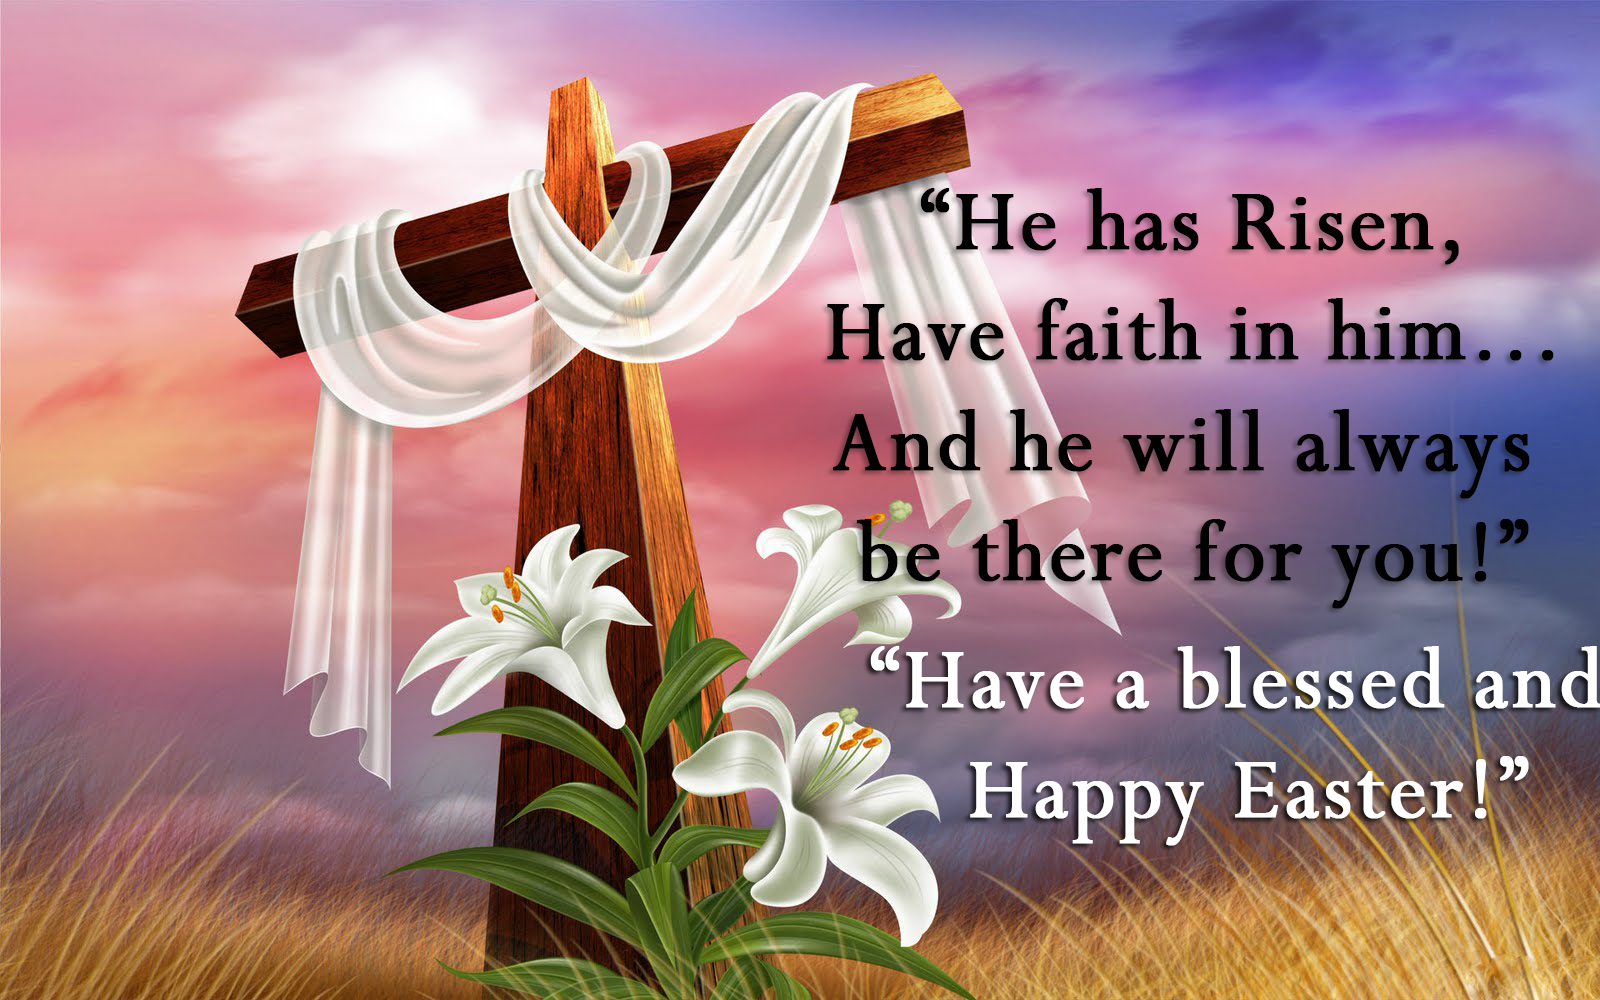 10 Happy Easter Quotes With Images To Share On Facebook